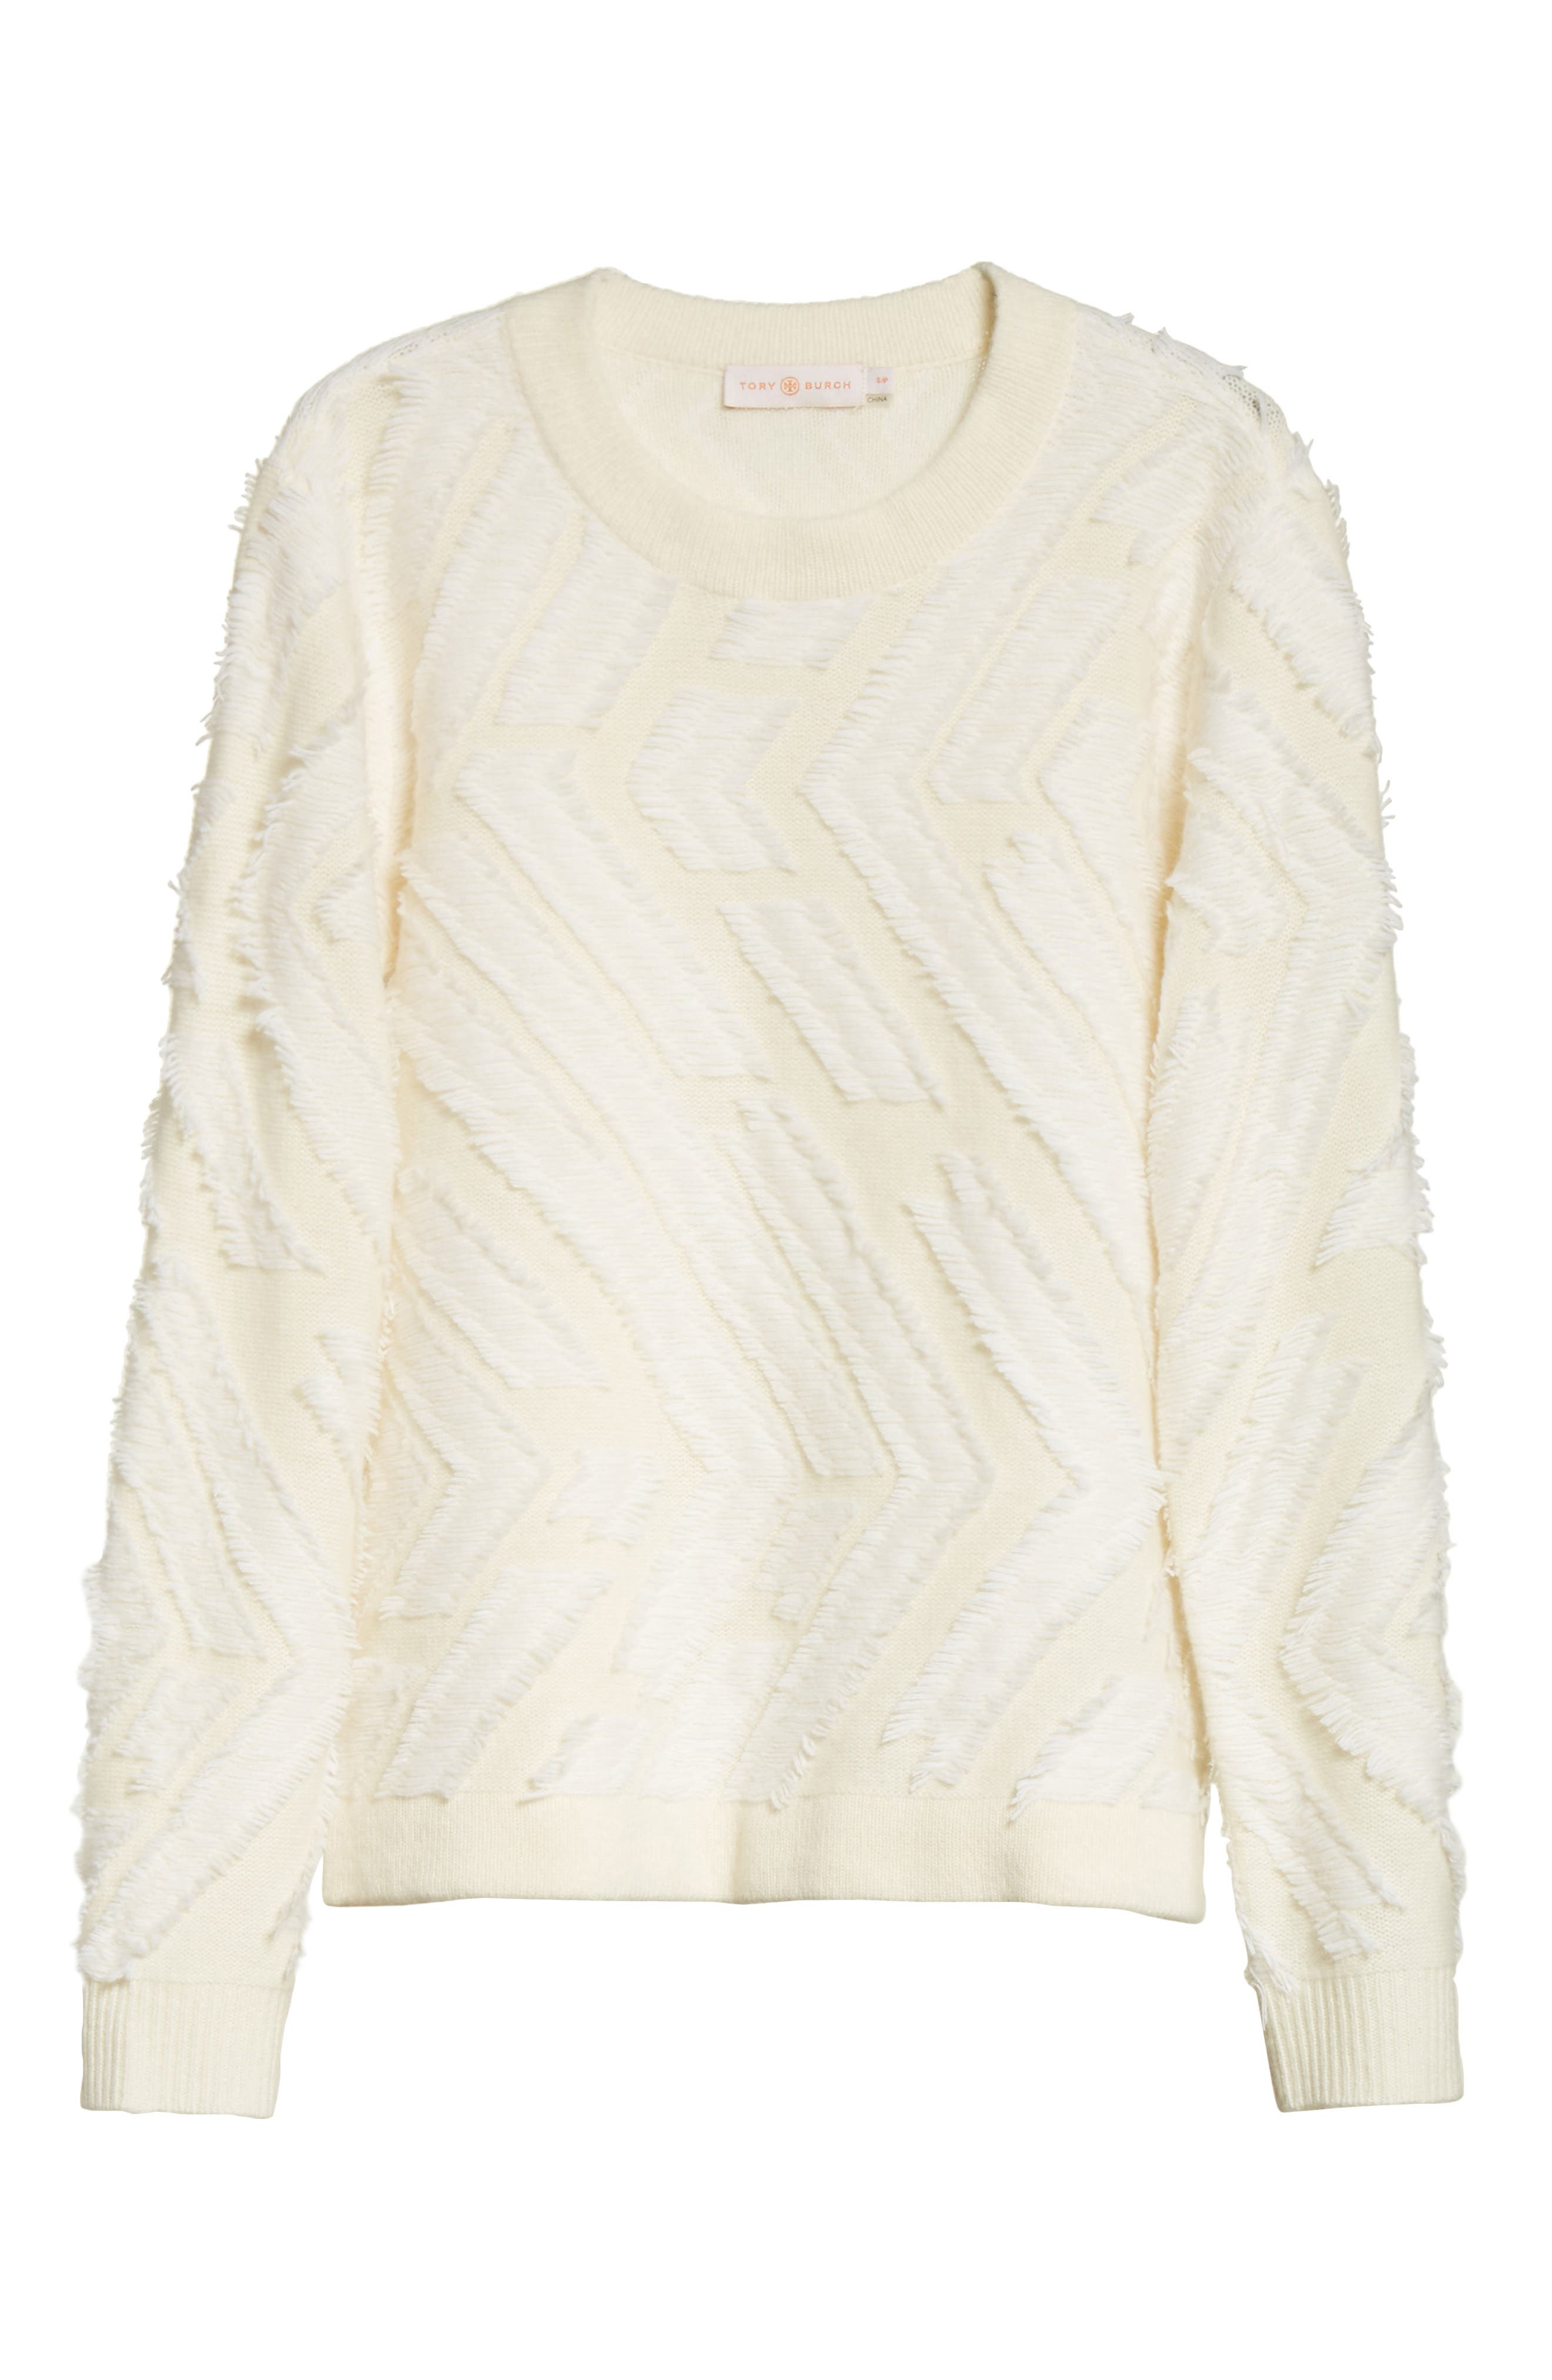 Textured Wool Sweater,                             Alternate thumbnail 6, color,                             New Ivory